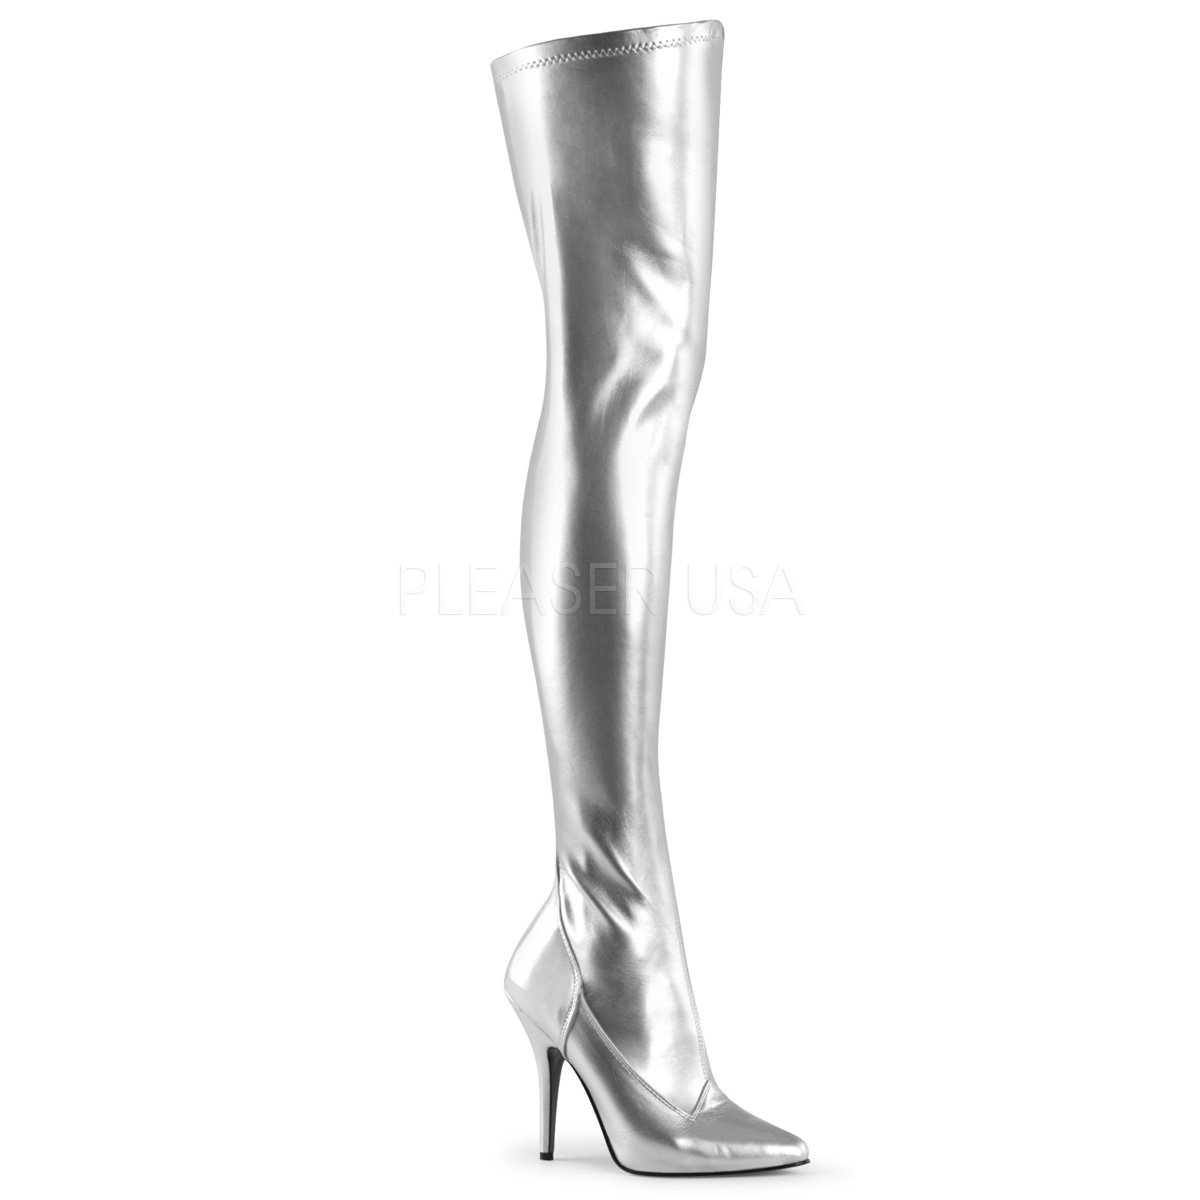 Pleaser SED3000/S/PU Women's Boot, Silver Stretch Faux Leather, 8 M US by pleaser